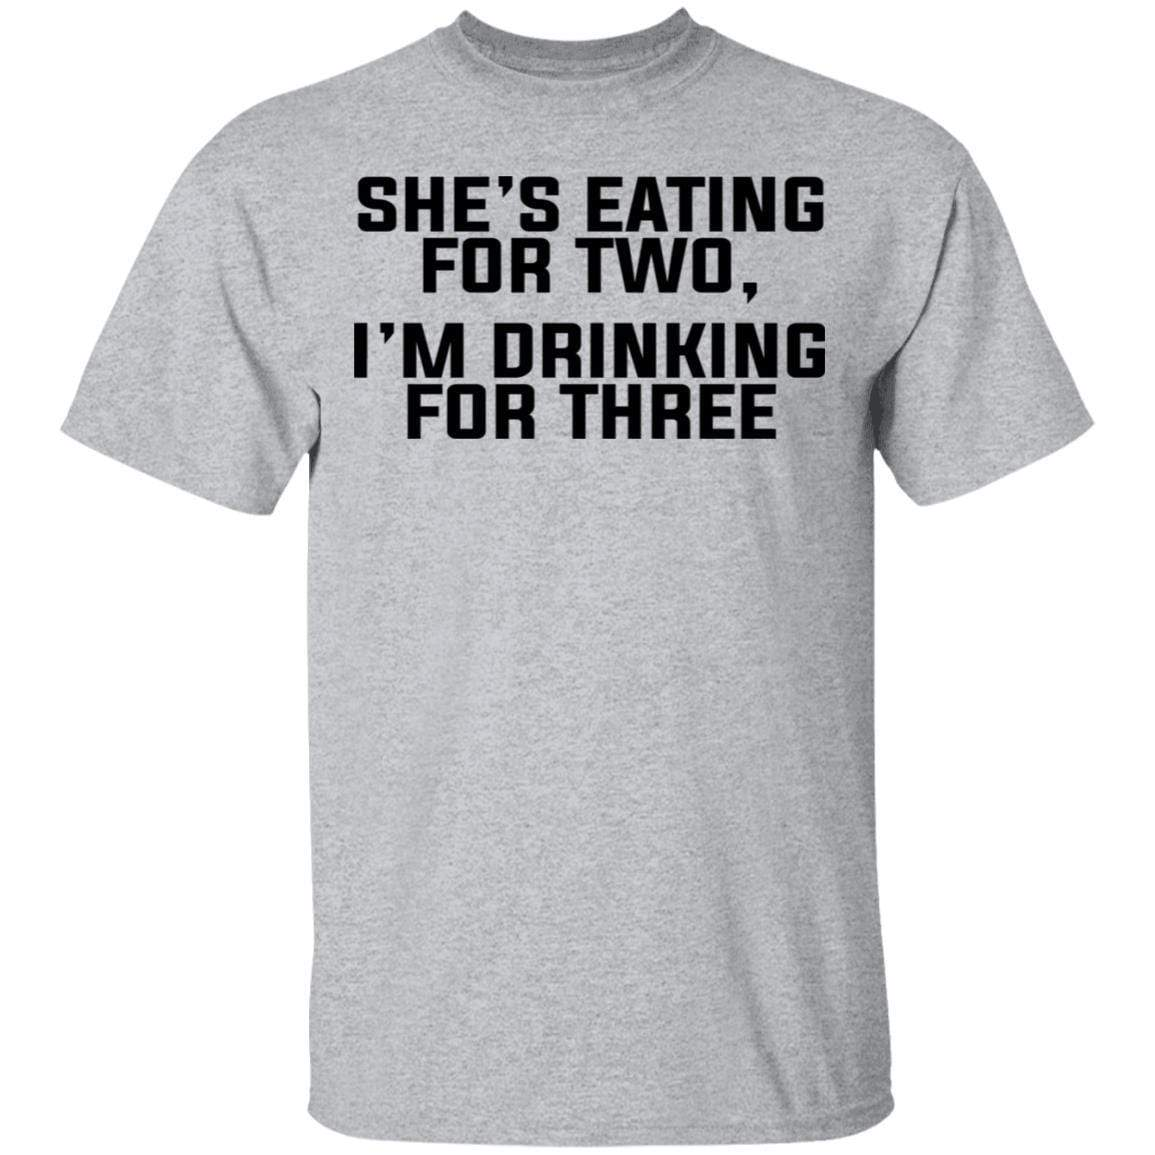 She's Eating For Two I'm Drinking For Three T-Shirts, Hoodies 1049-9972-86894819-48200 - Tee Ript